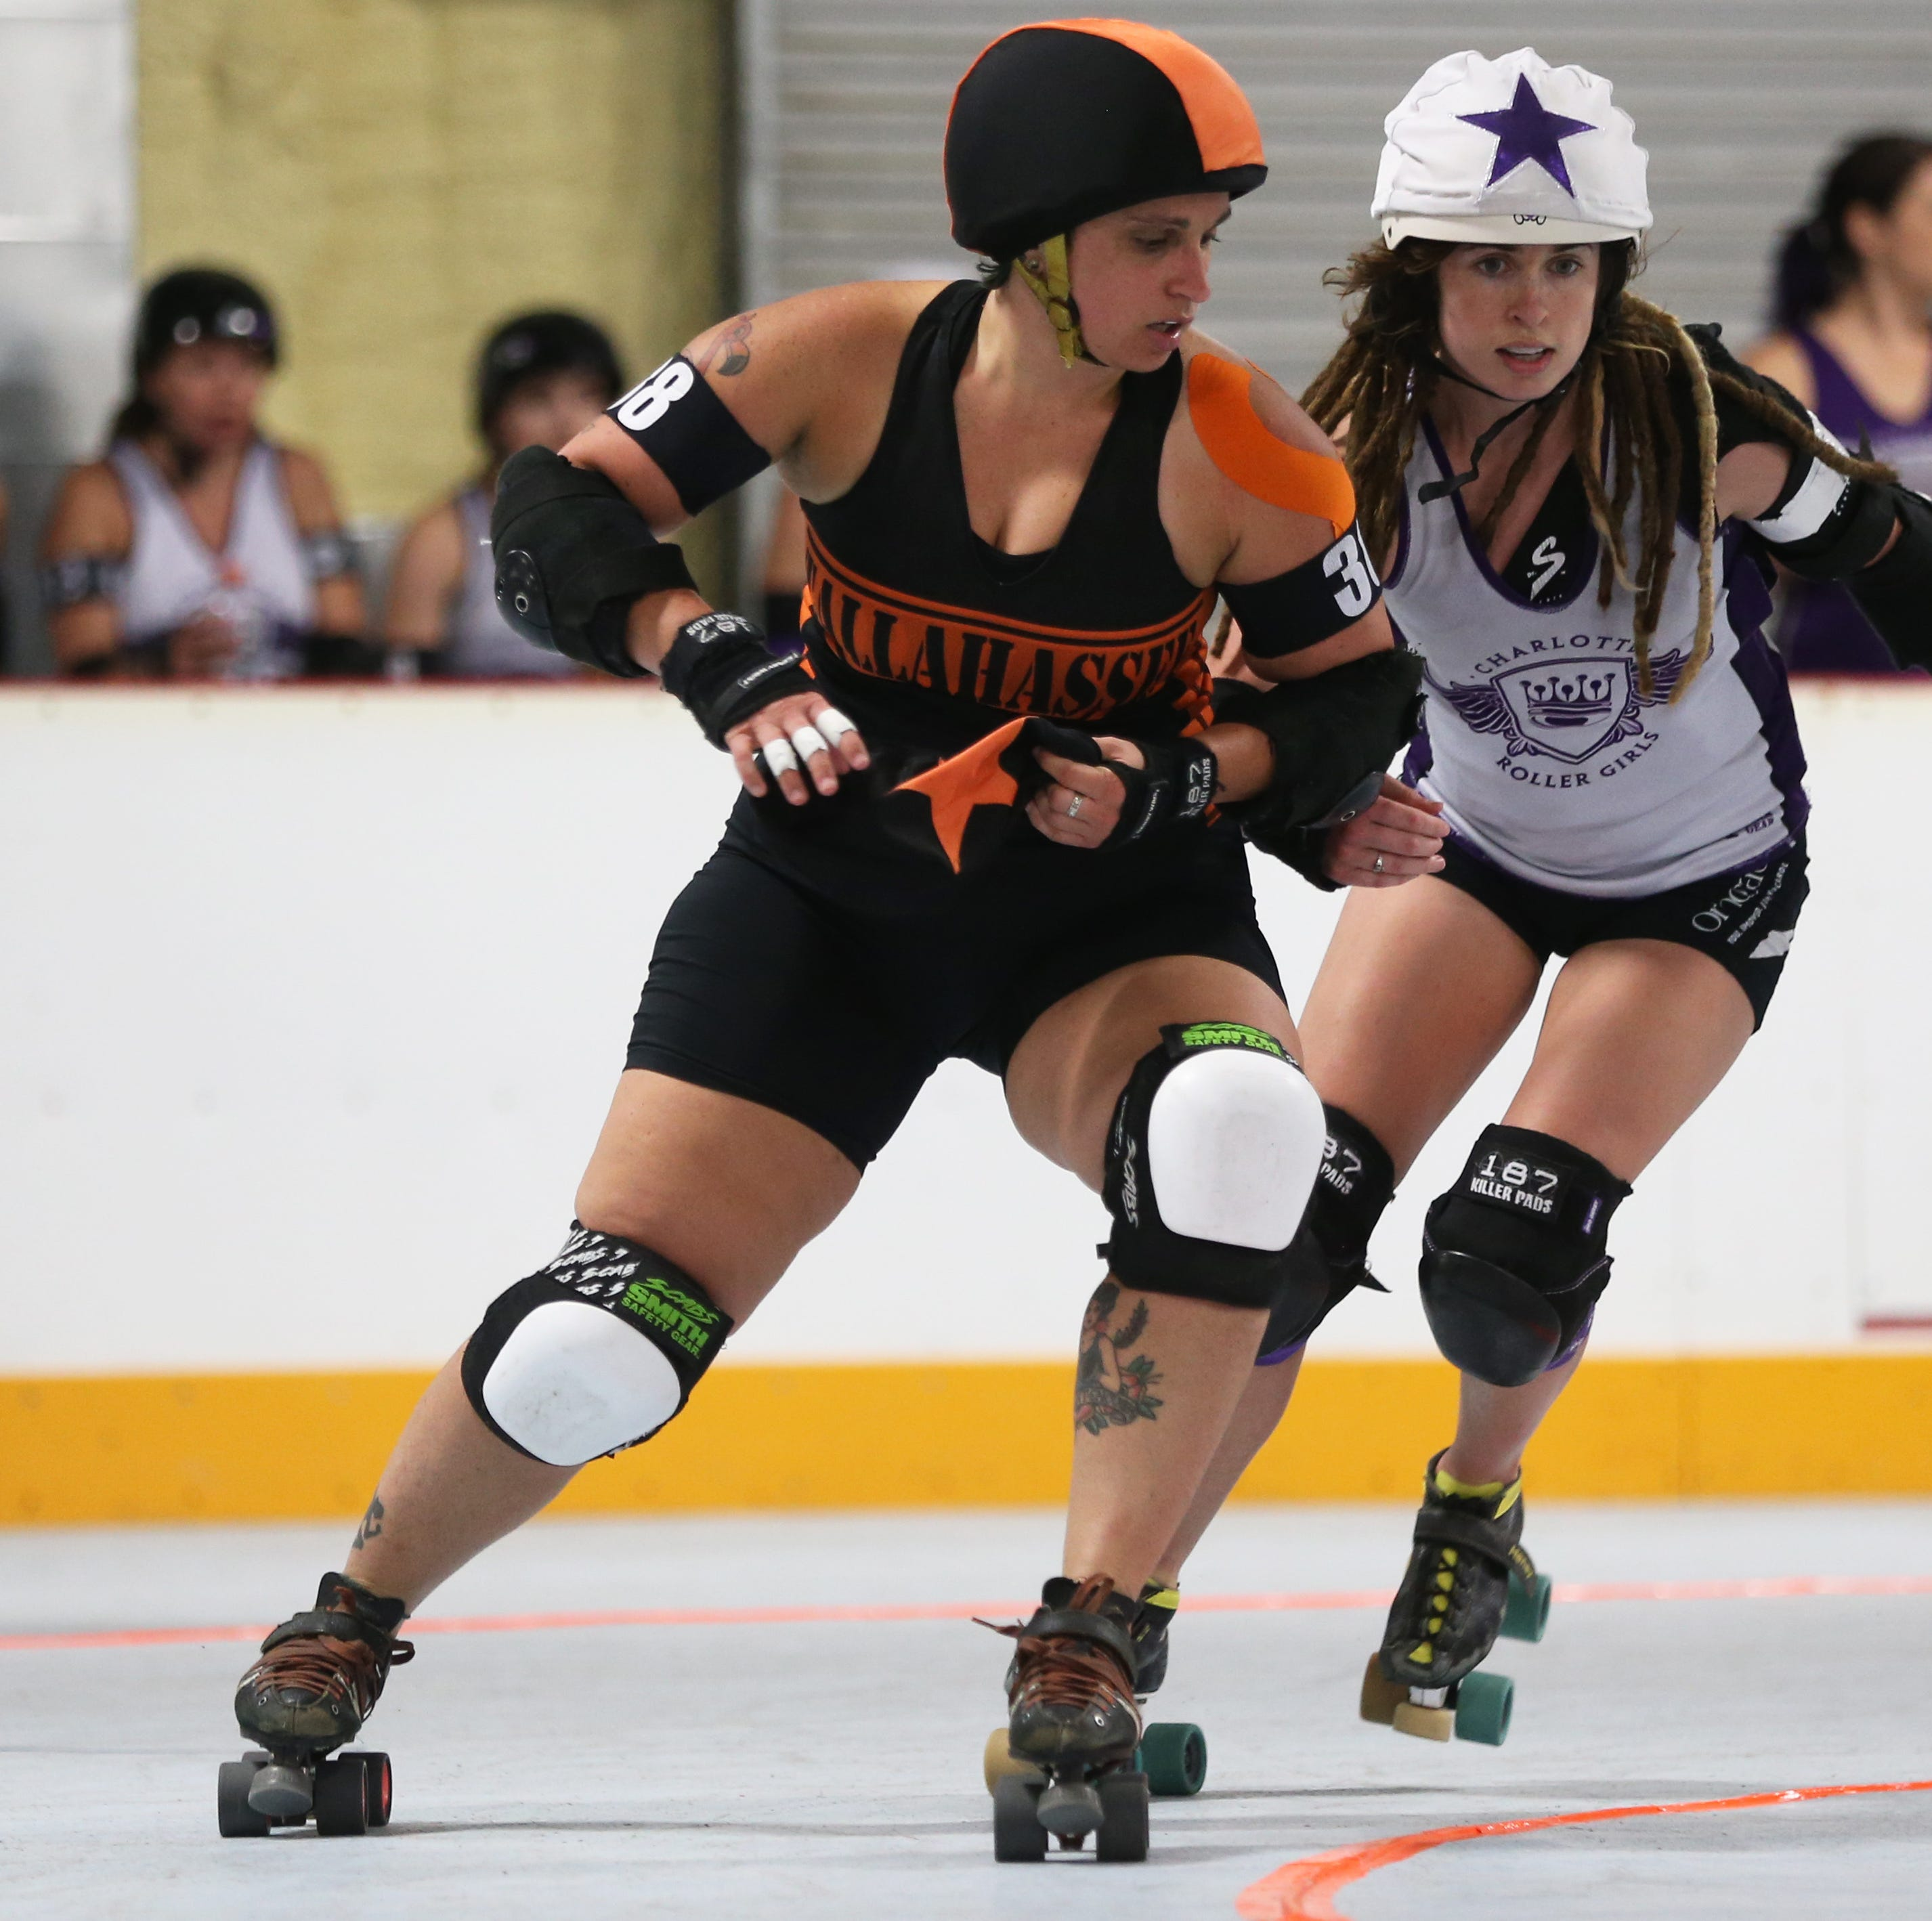 Best Bets: Get ready for roller derby, a Jimmy Buffett bash, Sondheim and Butler